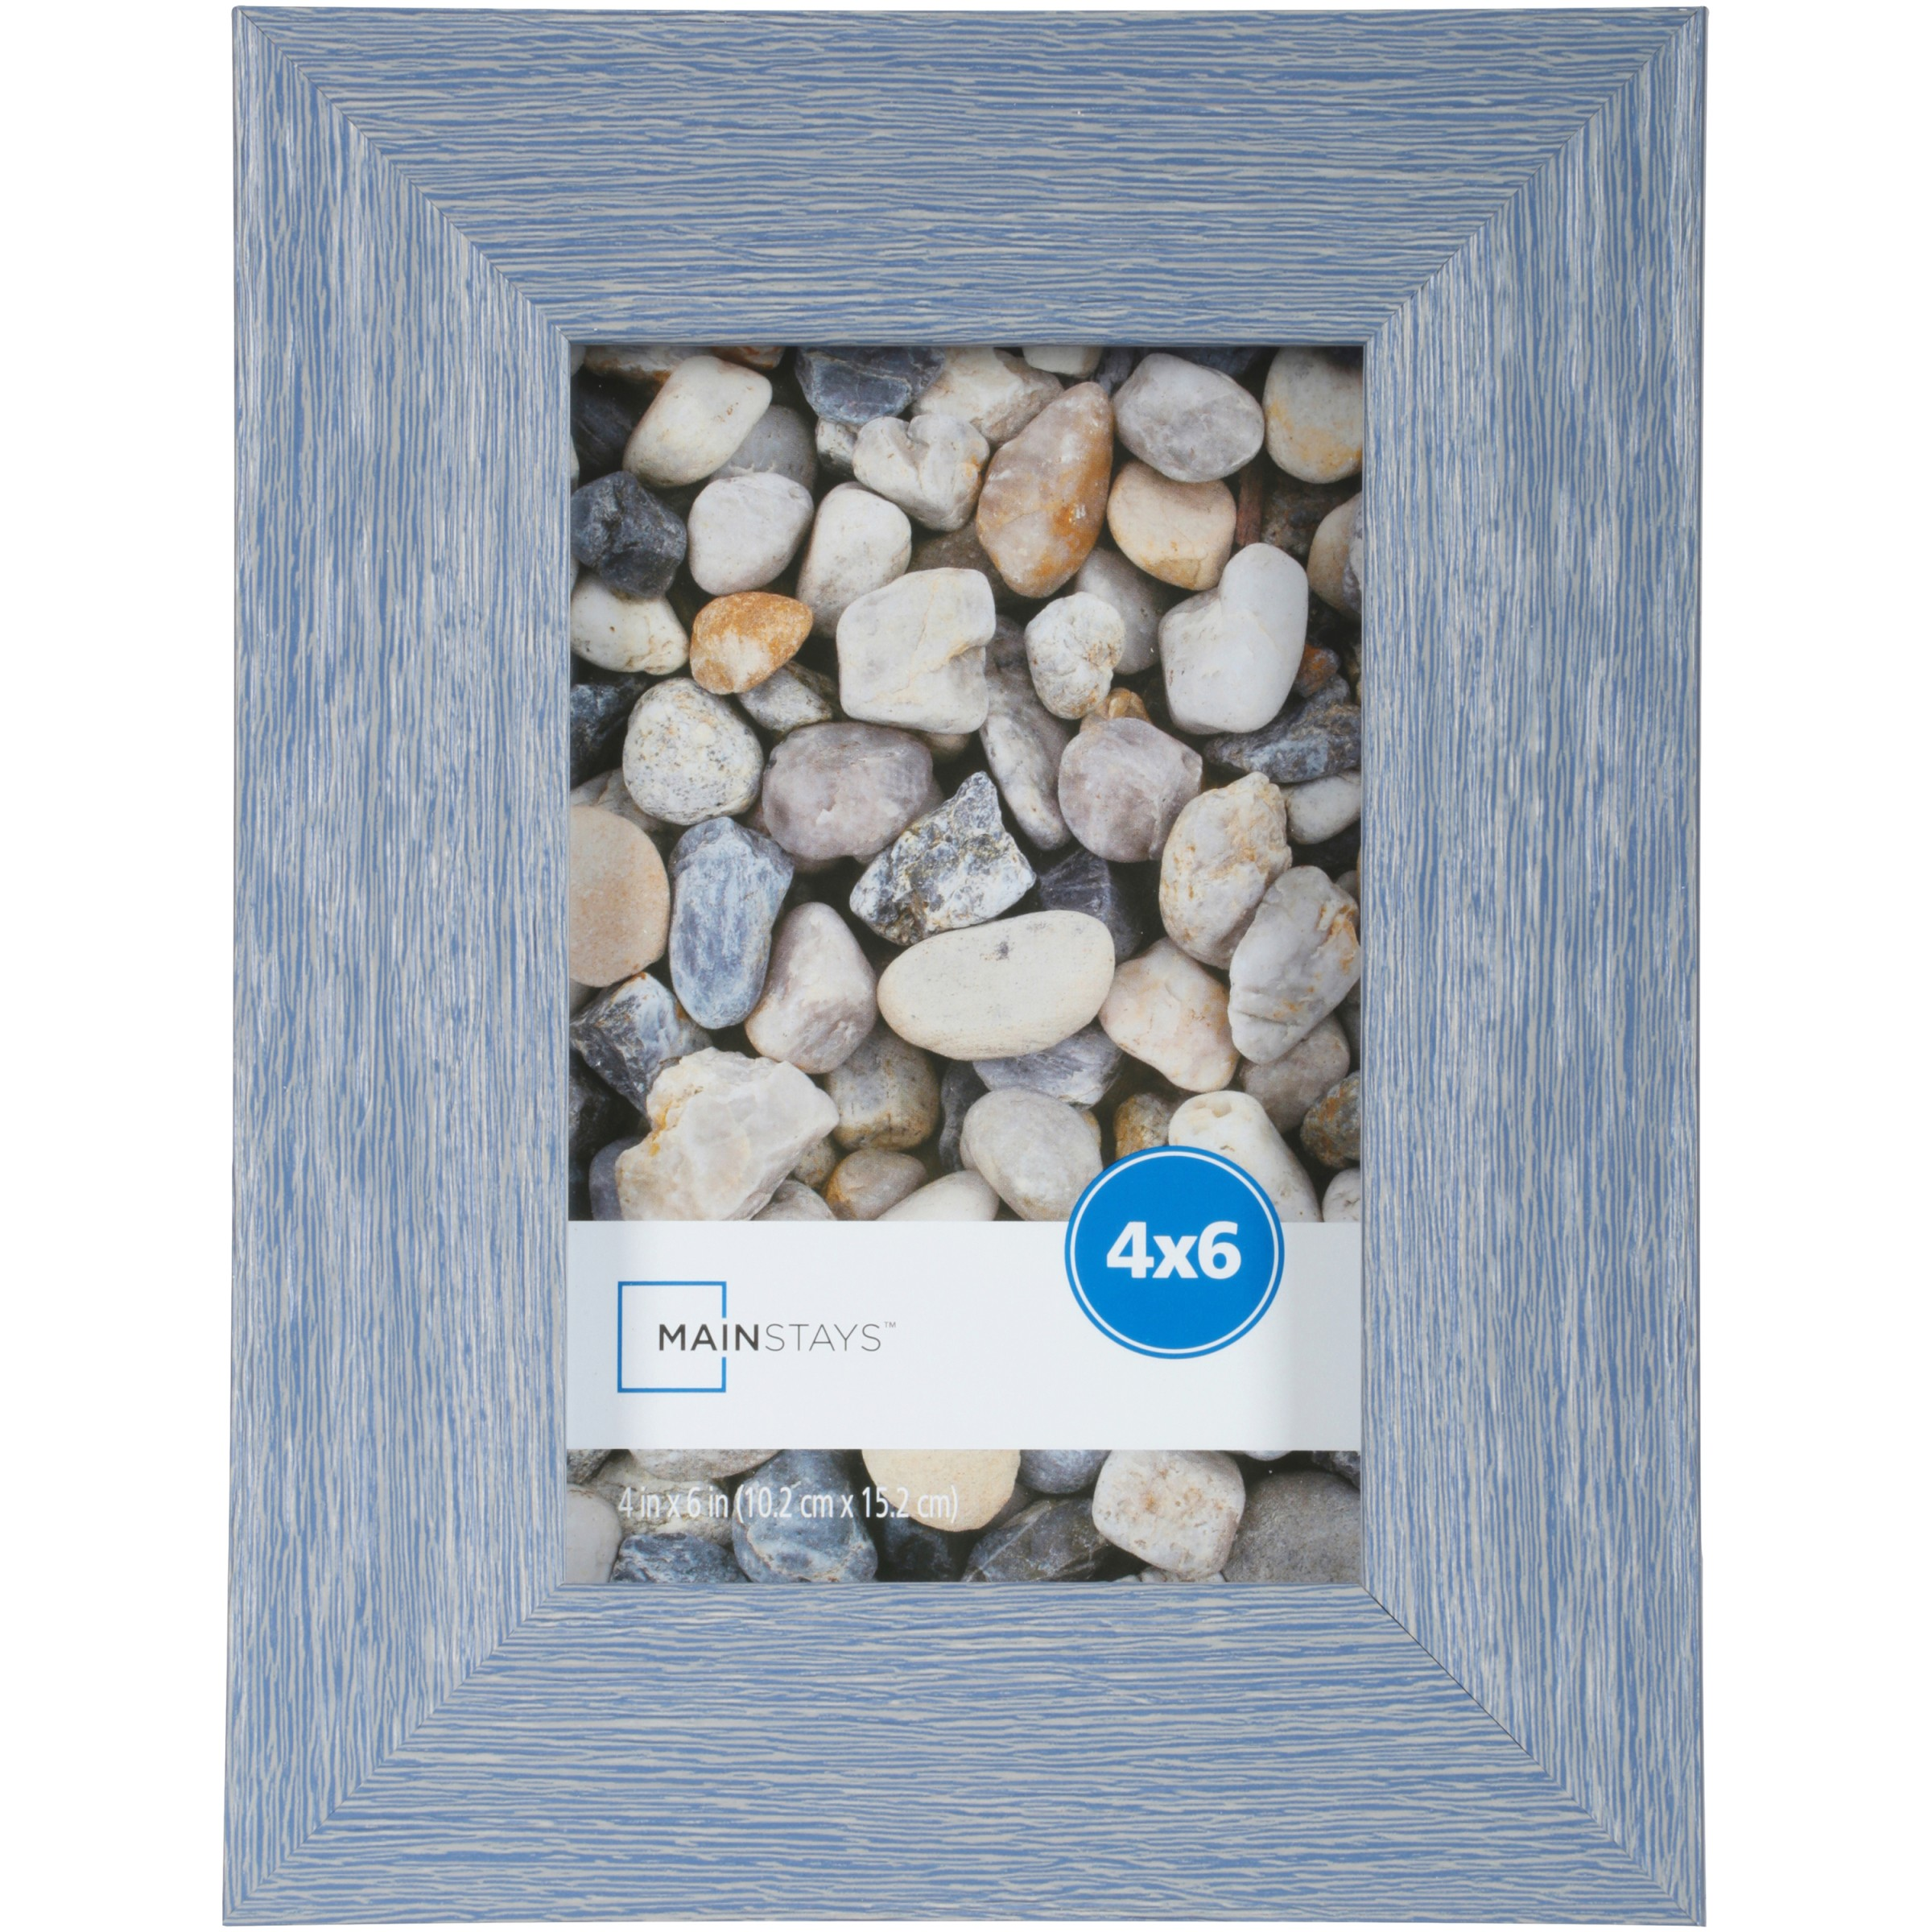 "Mainstays Ogunquit 4"" x 6"" Picture Frame, Blue, Set of 4"